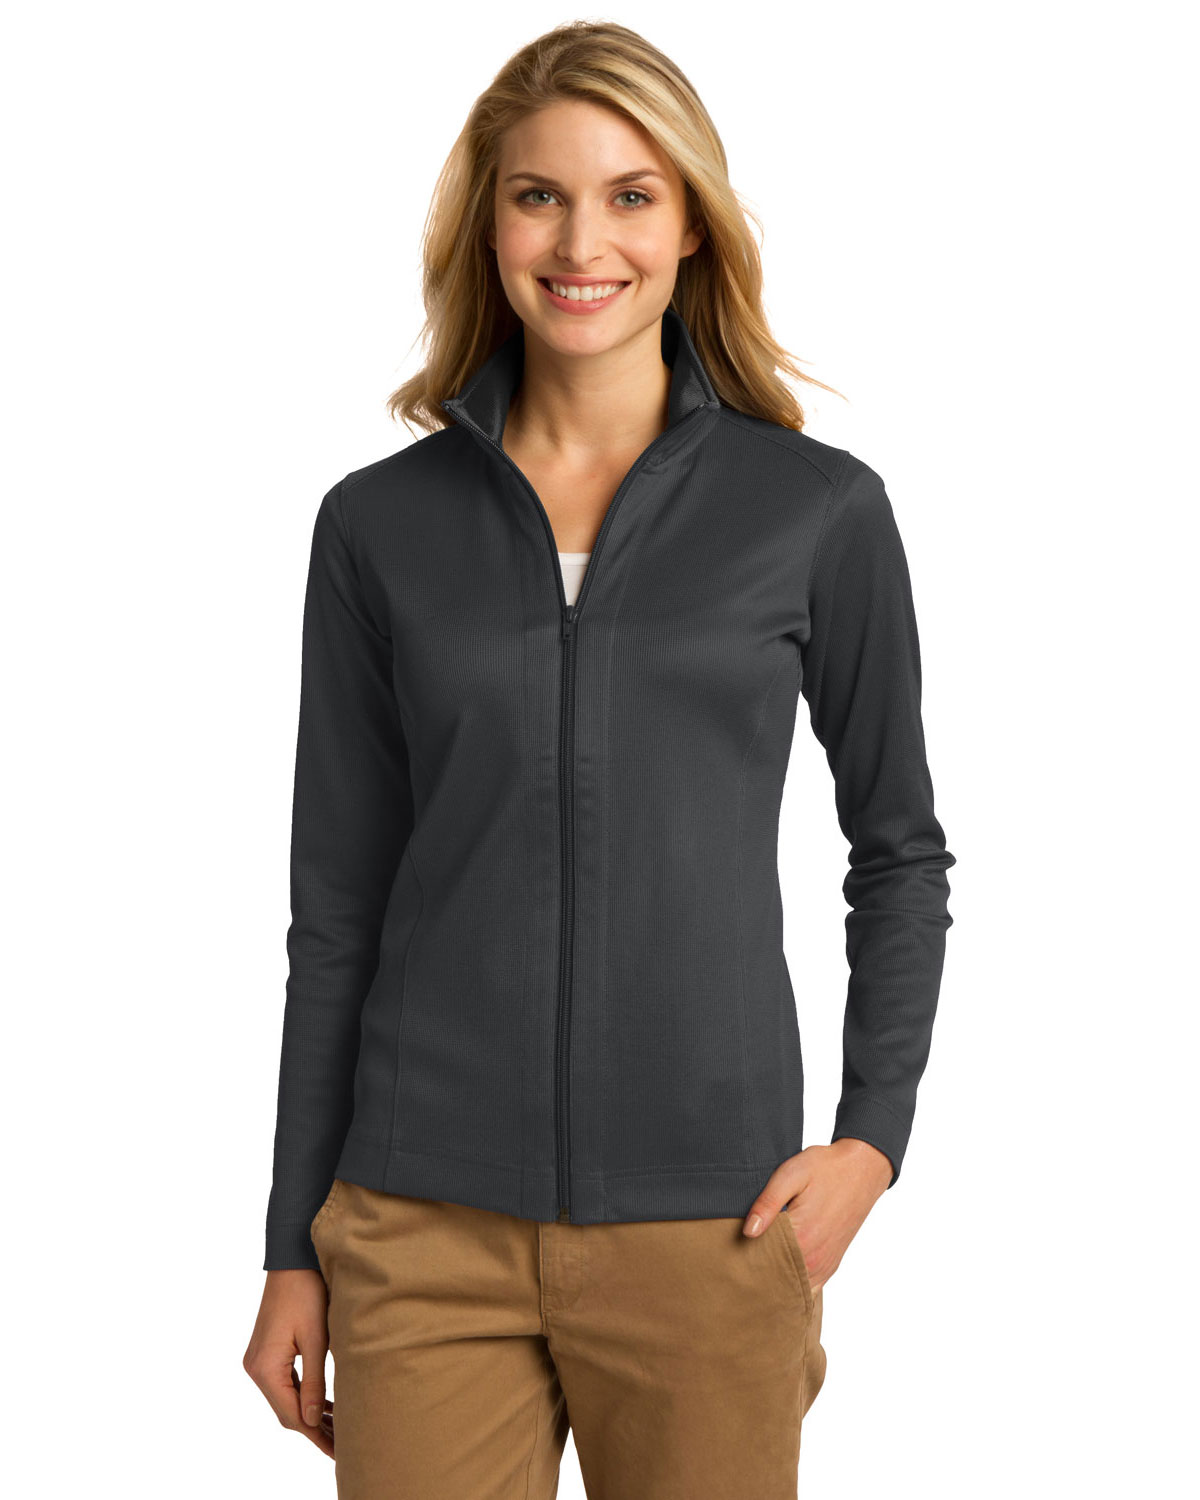 Port Authority L805 Women Vertical Texture Full Zip Jacket at GotApparel